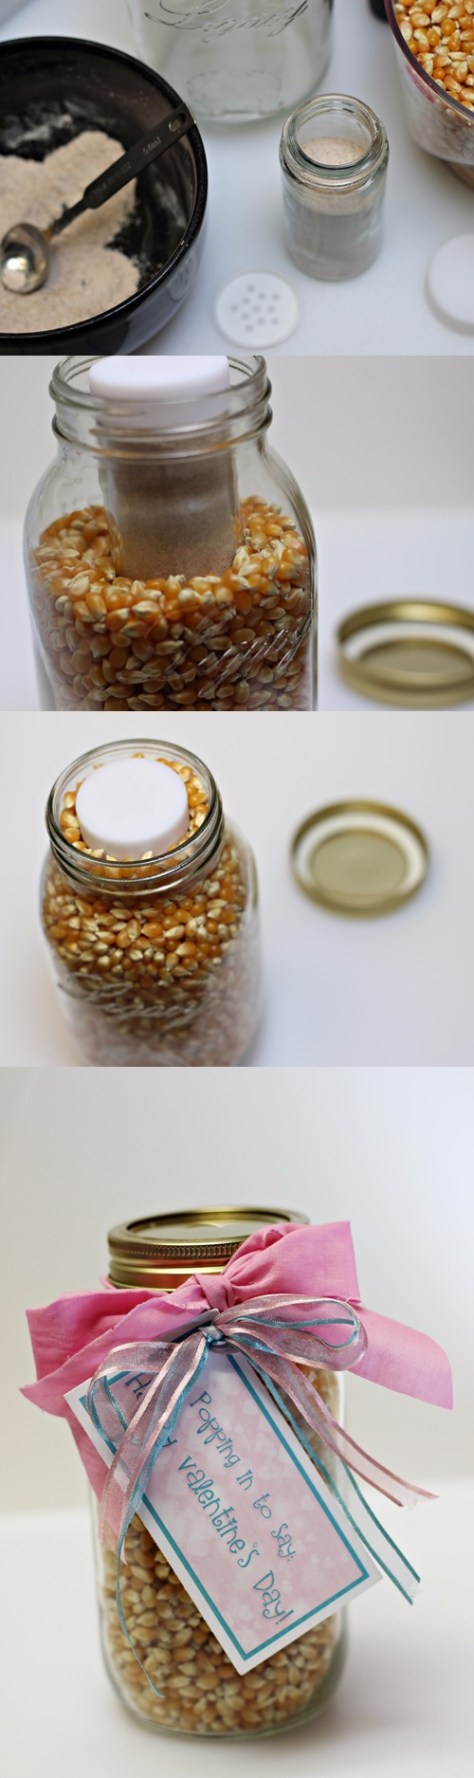 Valentines Gift Popcorn In A Jar Tutorial